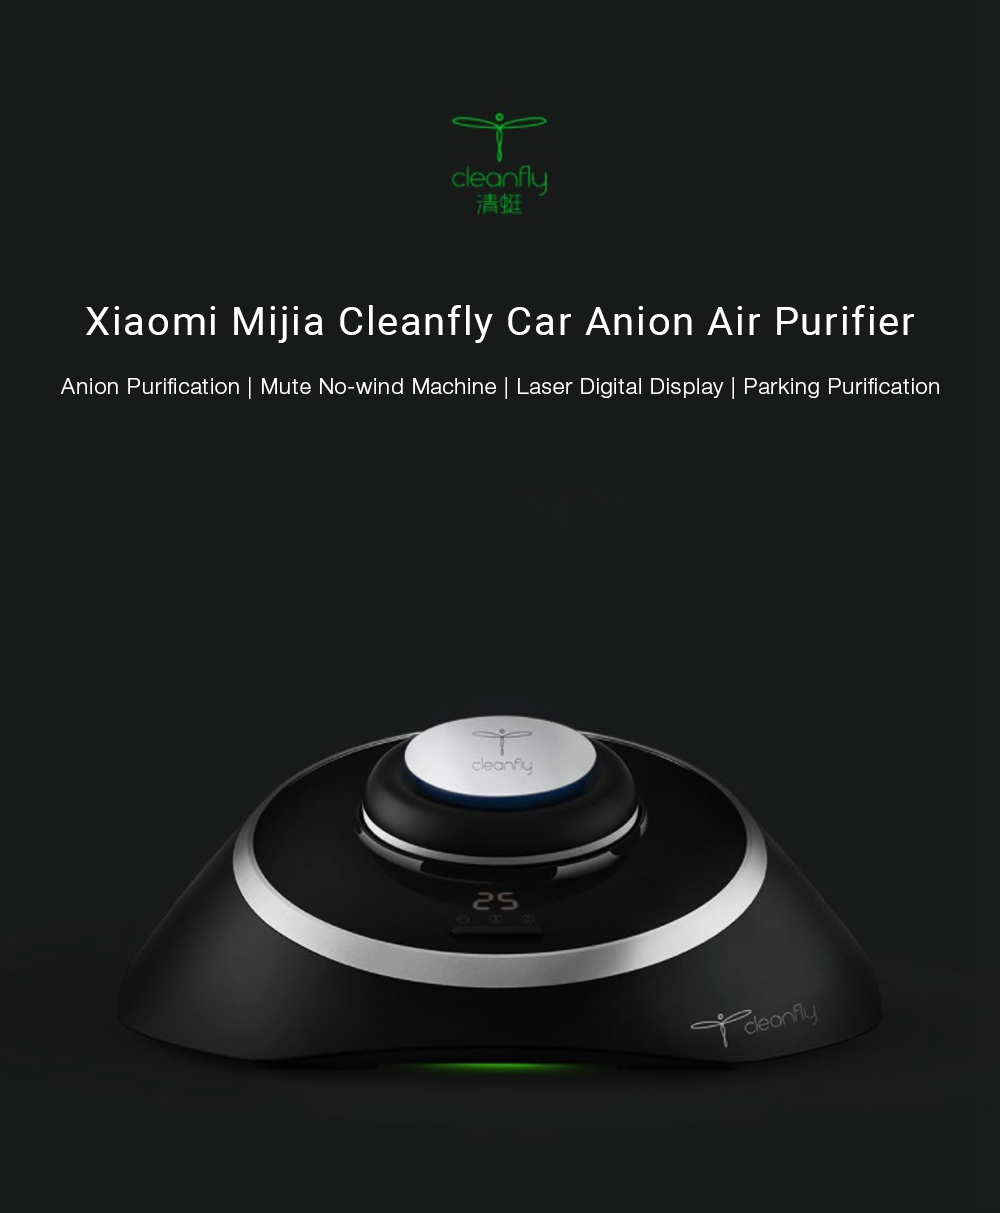 New original Xiaomi Mijia Cleanfly M1 Car Anion Air Purifier LED Display Mute Portable Purifier Support Parking Purification USB (1)